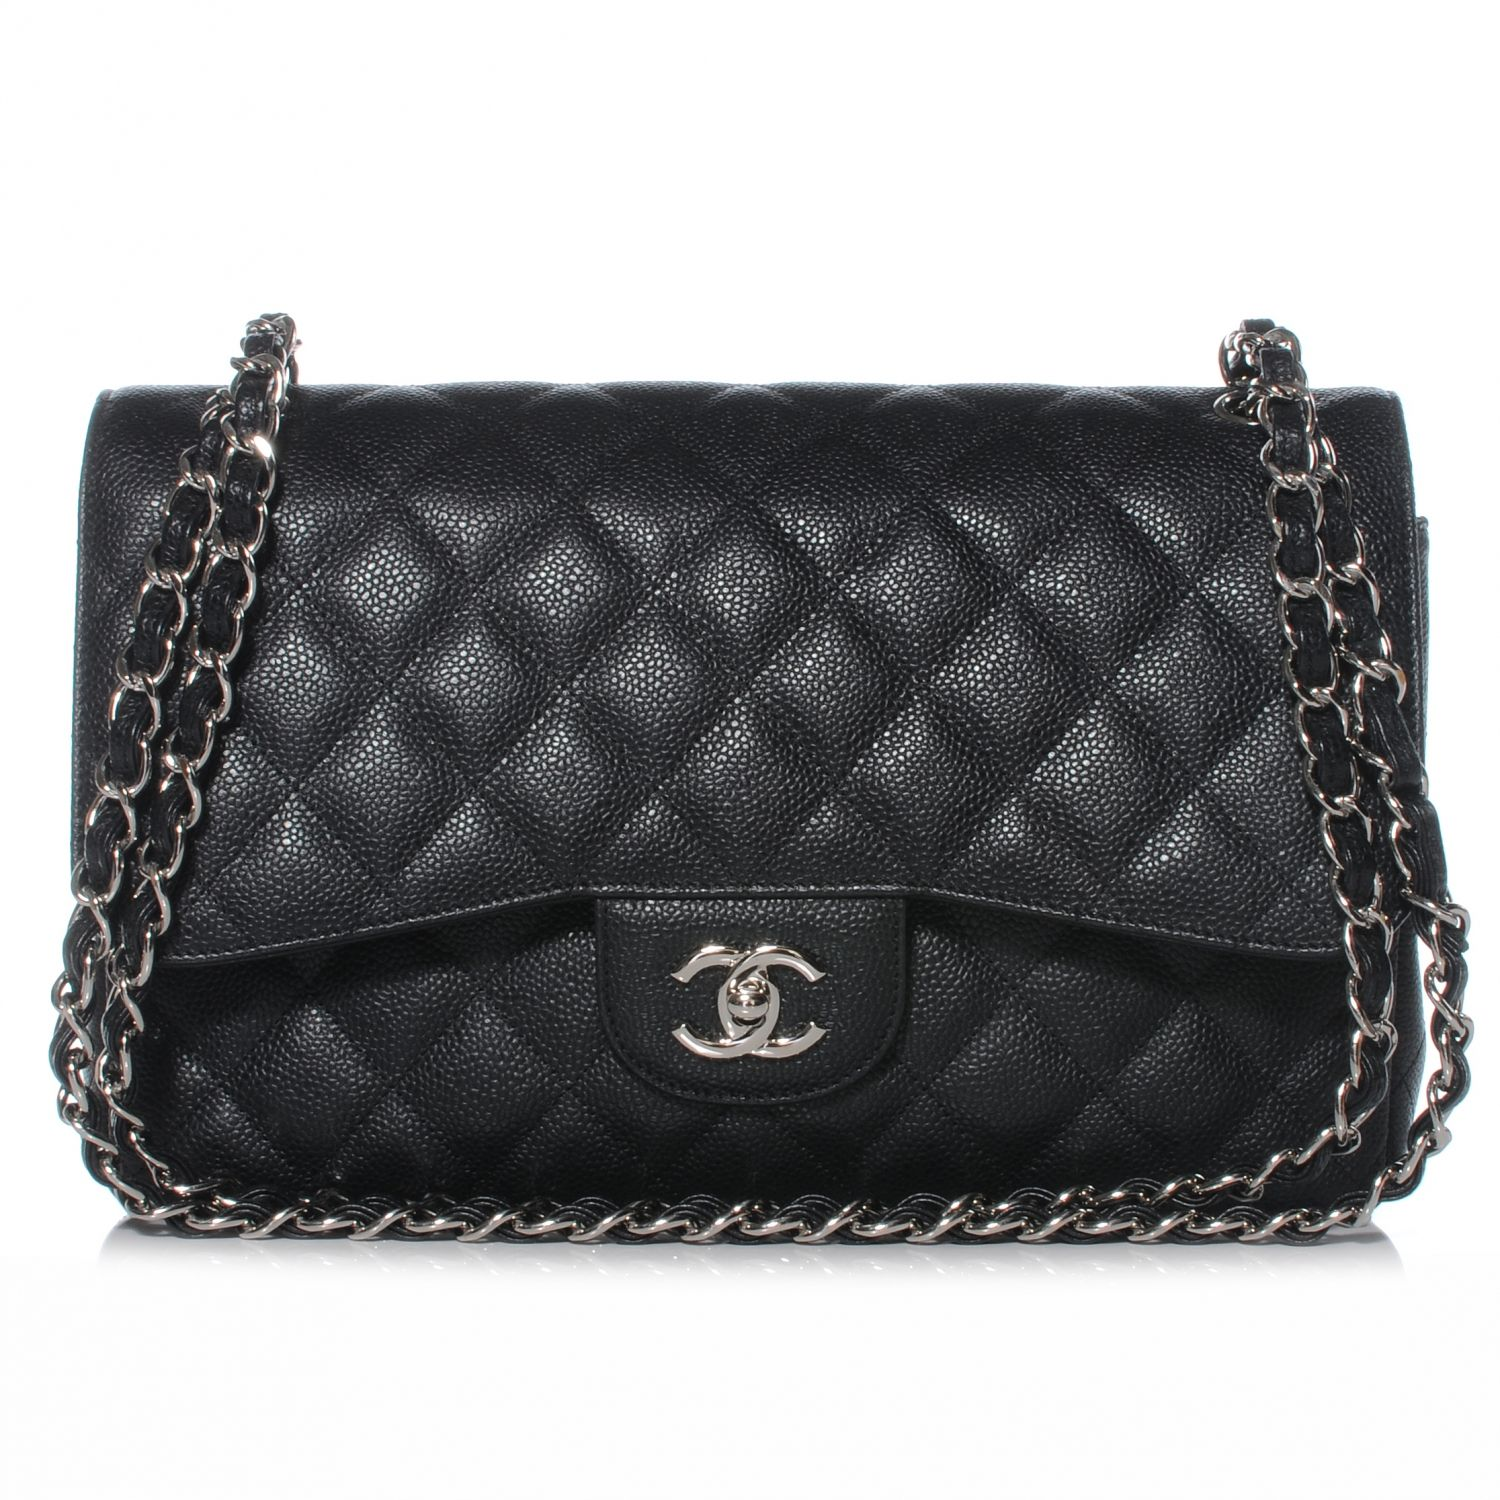 Chanel Black Quilted Caviar Classic Jumbo 2.55 Double Flap Bag with Silver  hardware. 03081c9f9ee90